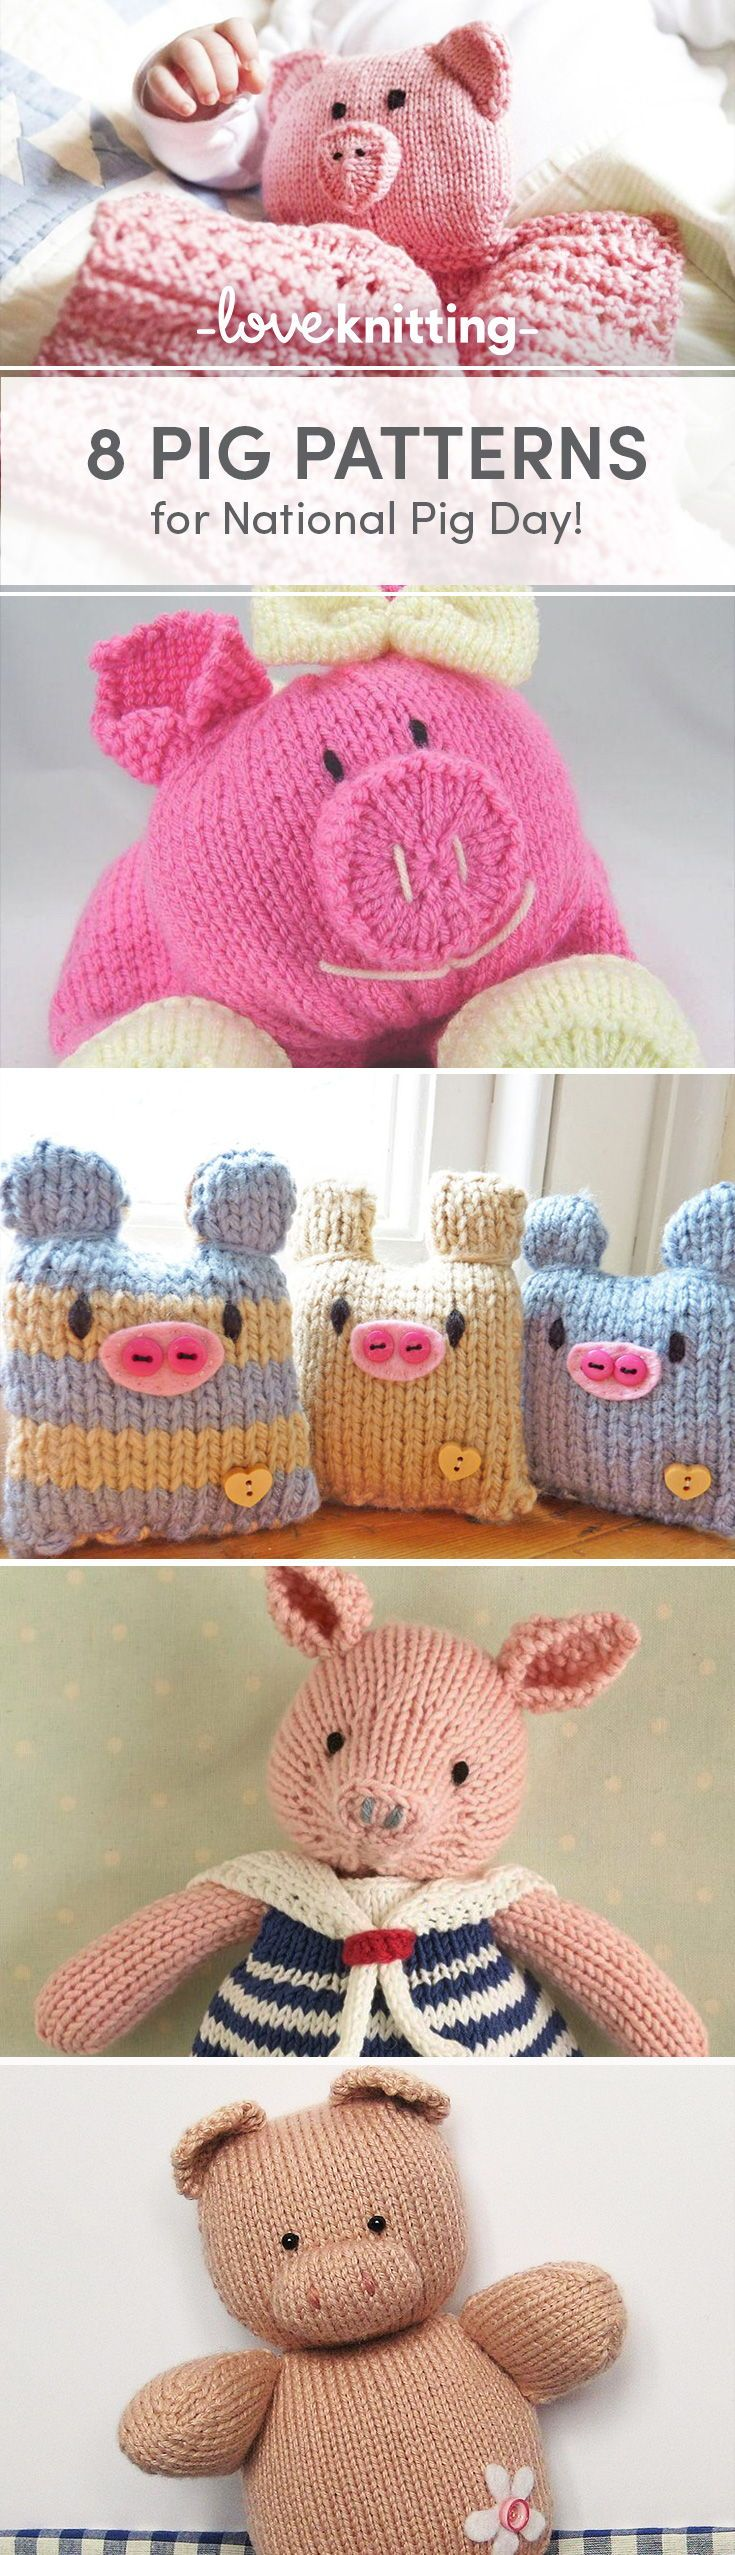 6 piggy projects you\'ll love for National Pig Day | Pinterest ...